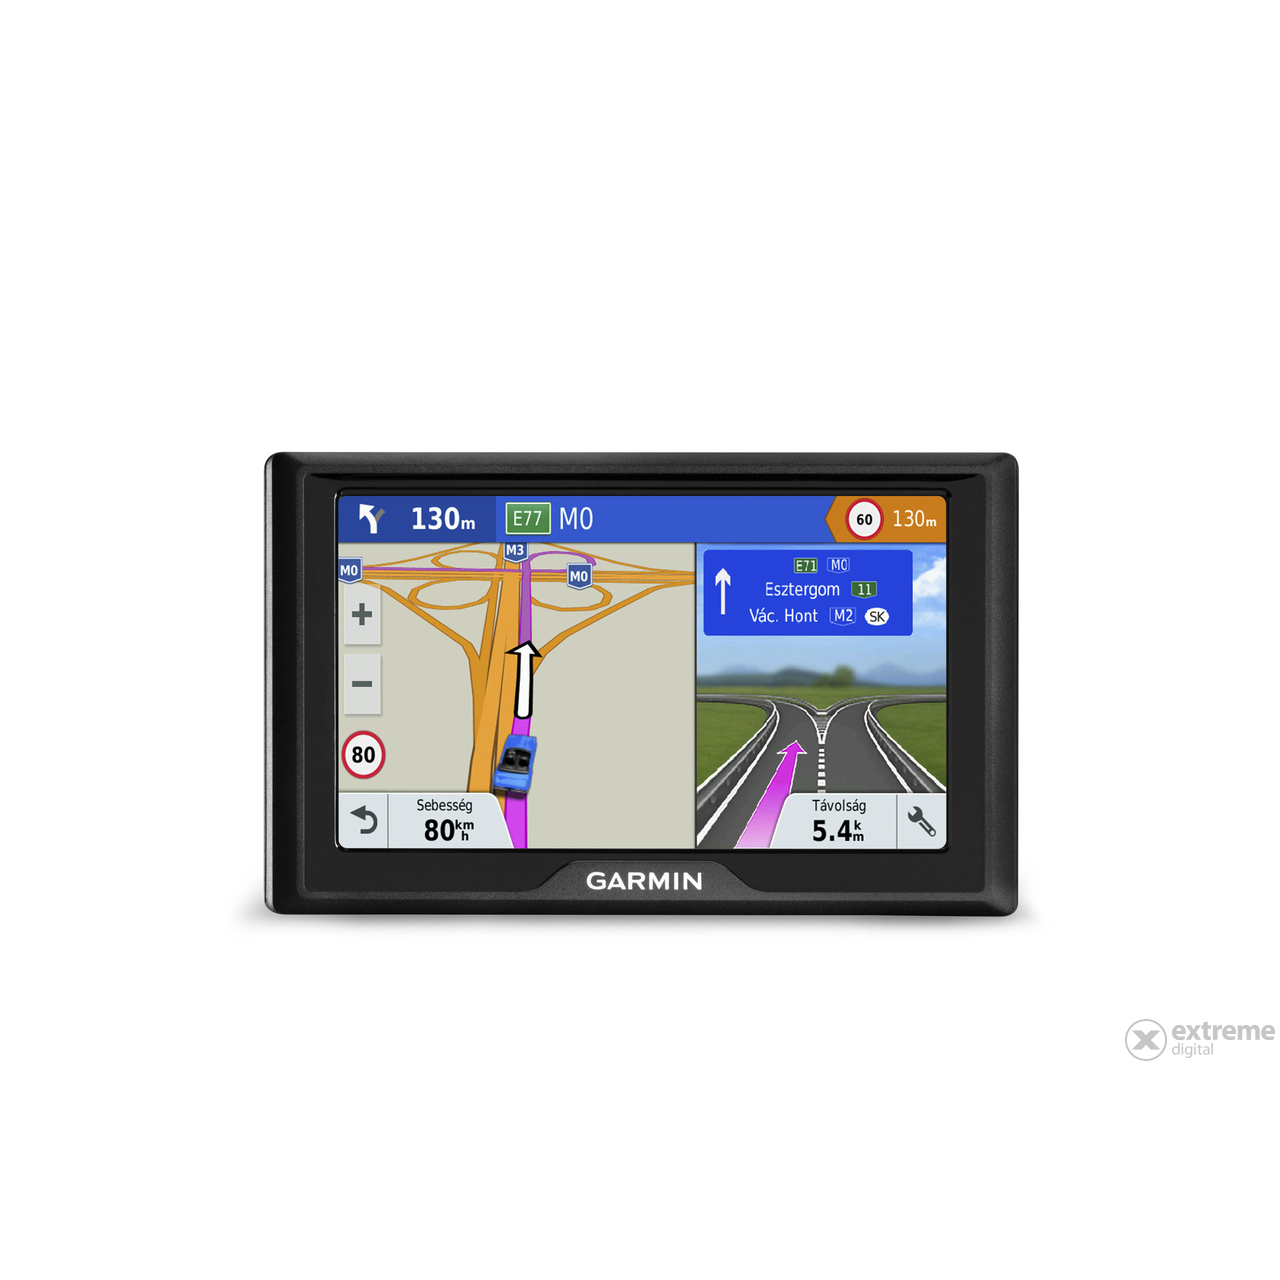 Garmin Drive 50 LM (Lifetime Maps) 5